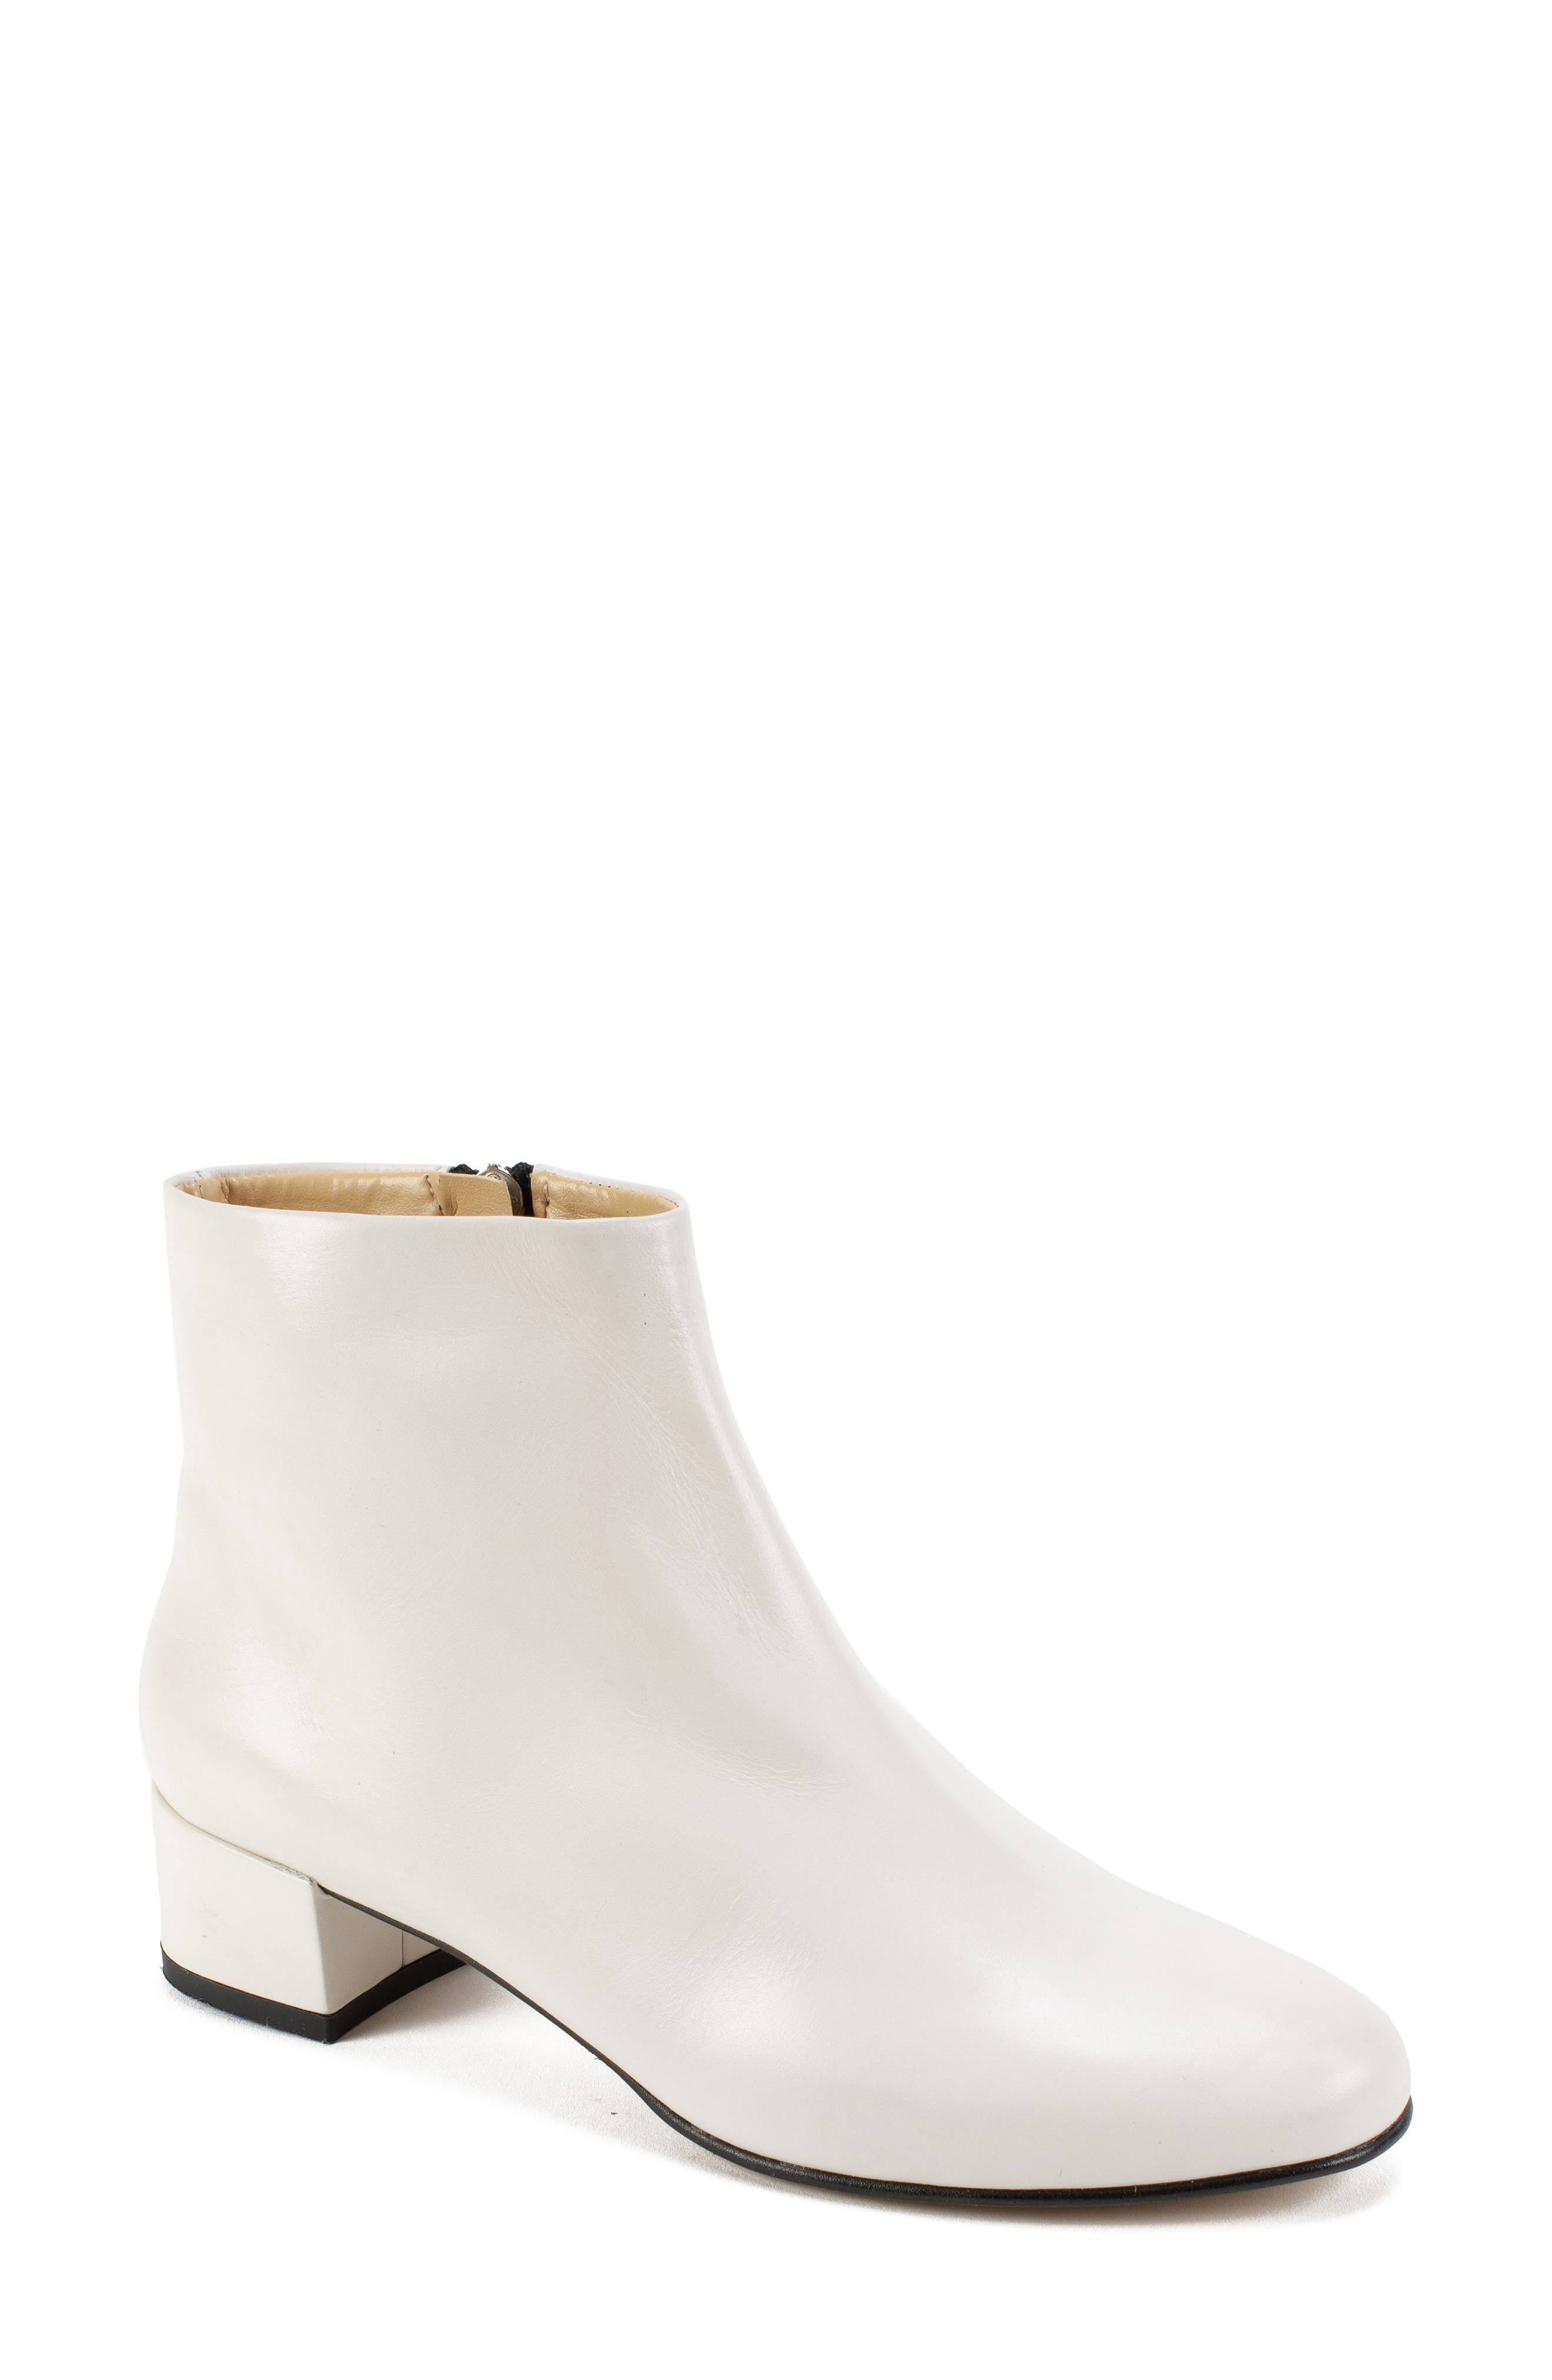 by White Mountain Jordie Block Heel Bootie,                             Main thumbnail 1, color,                             WHITE LEATHER